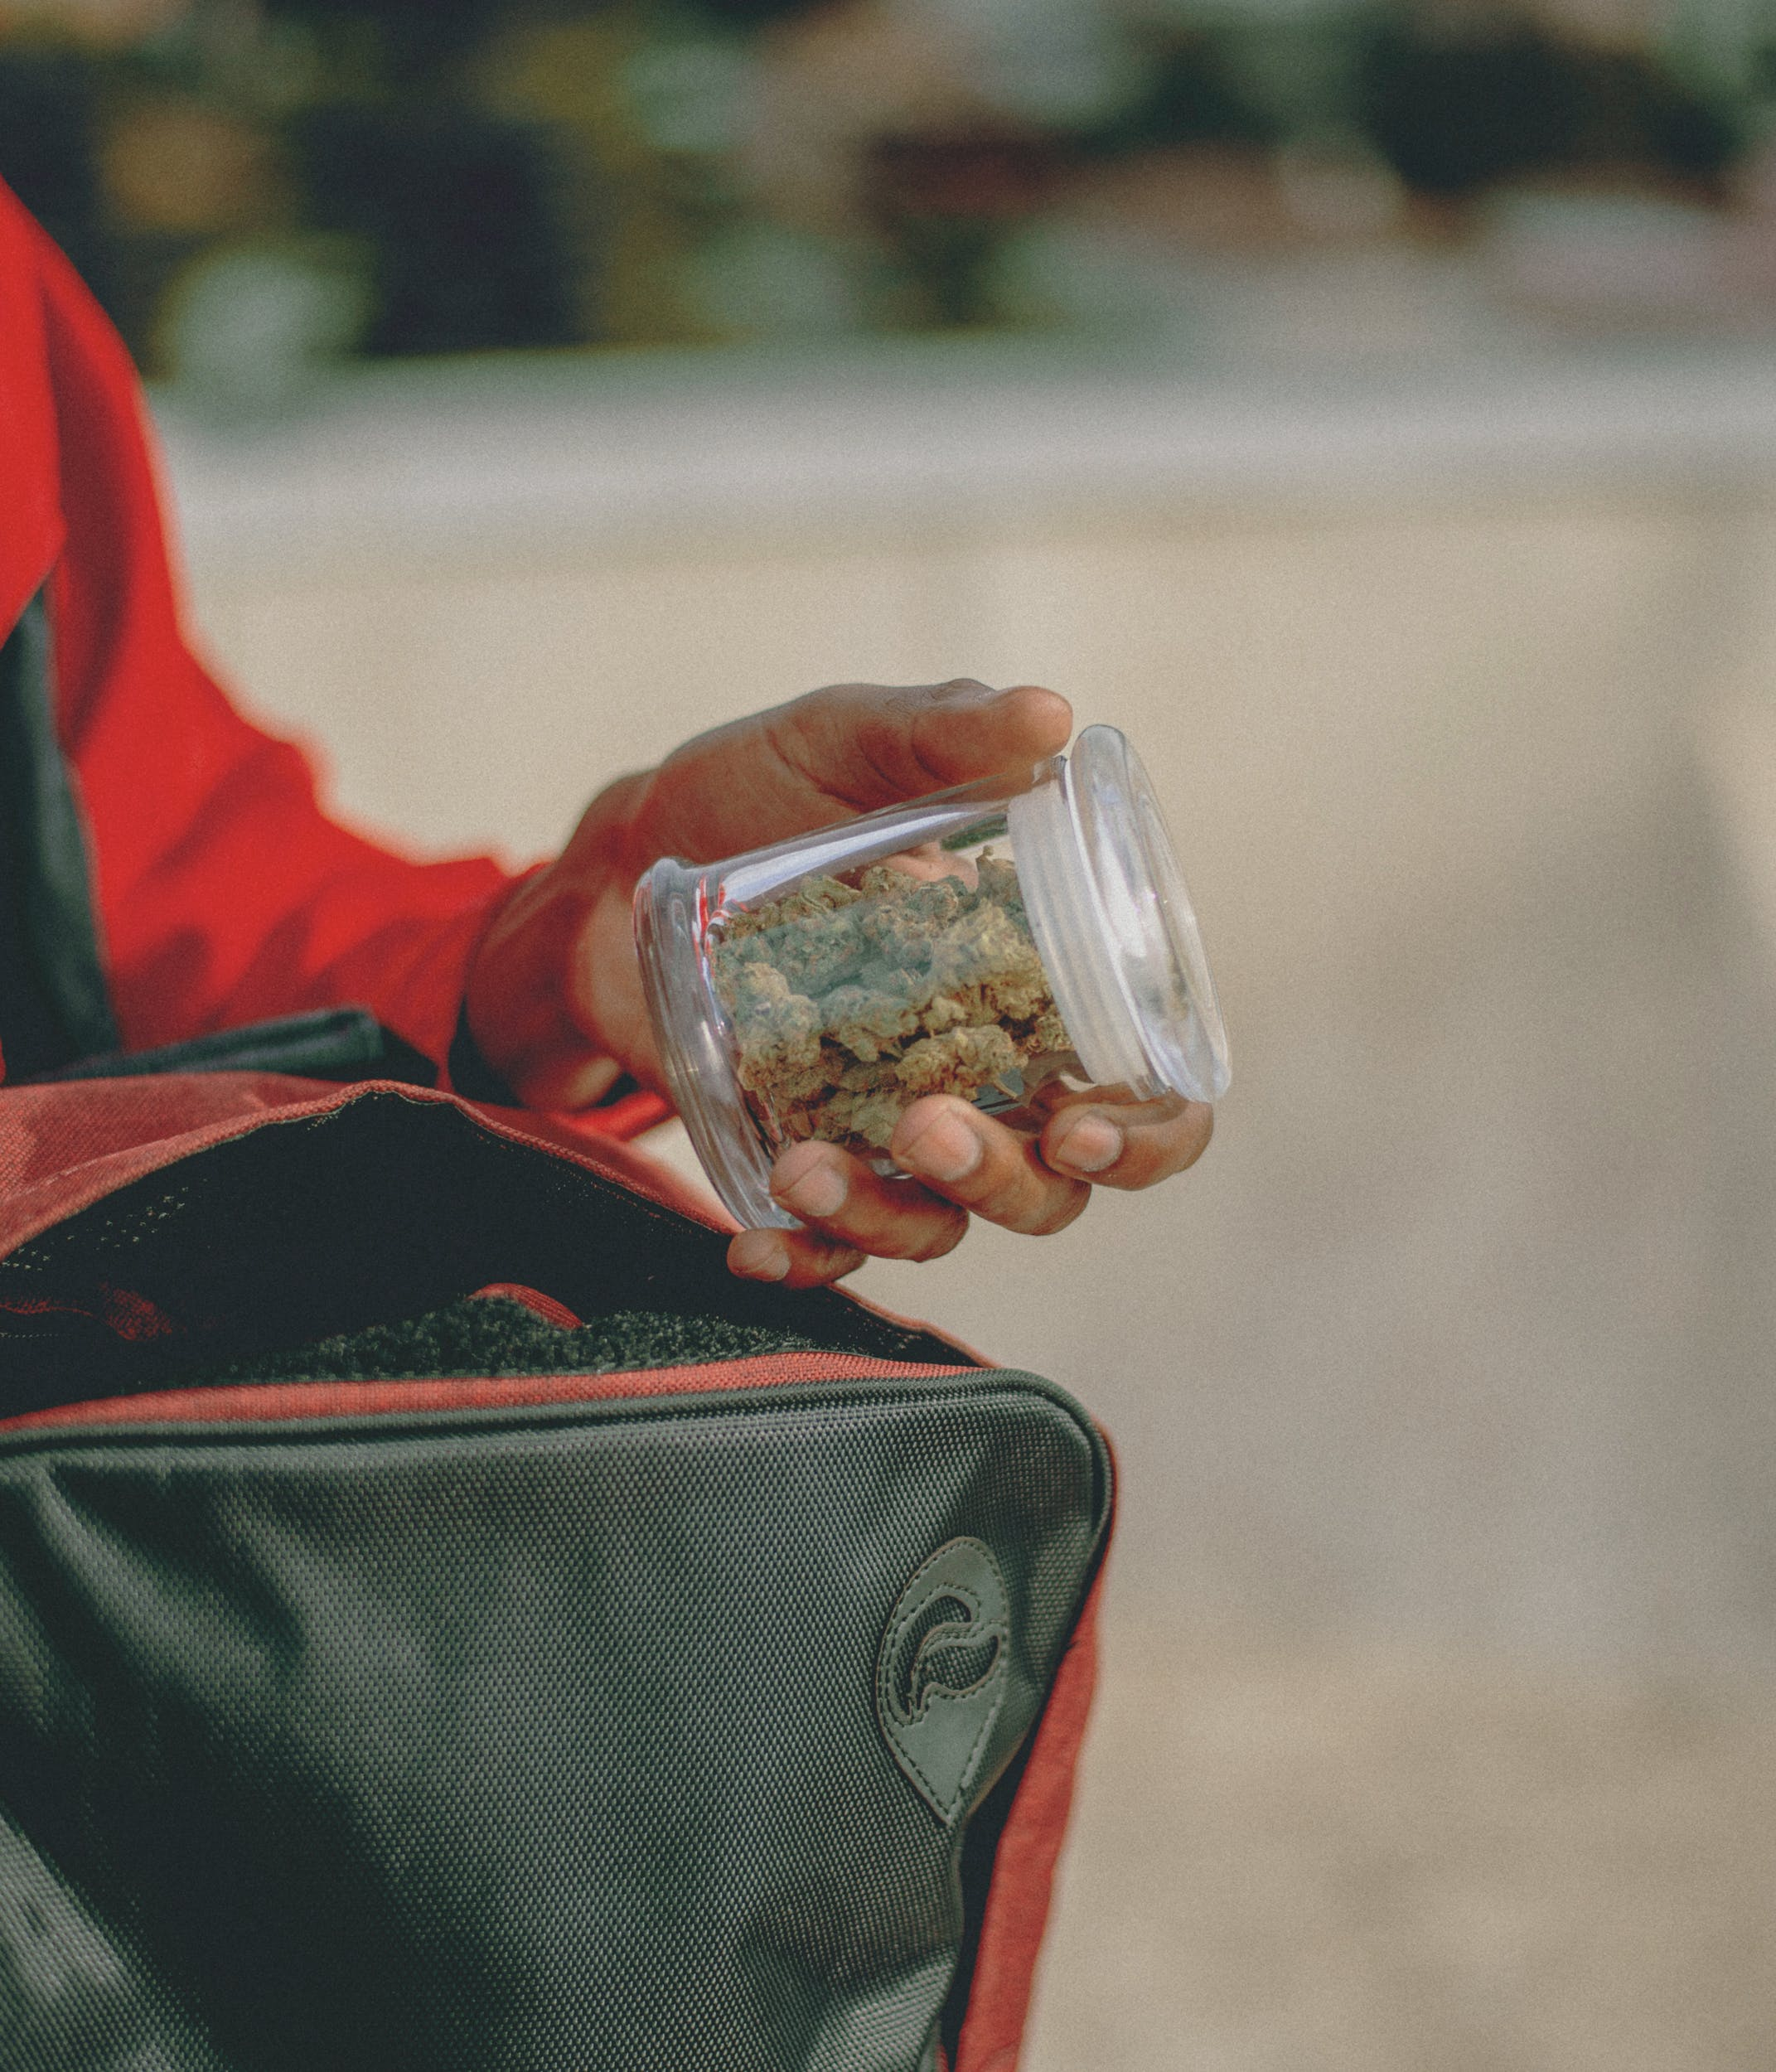 Best Rolling Trays 25 These Are Best Stash Bags to Keep Your Bud Safe